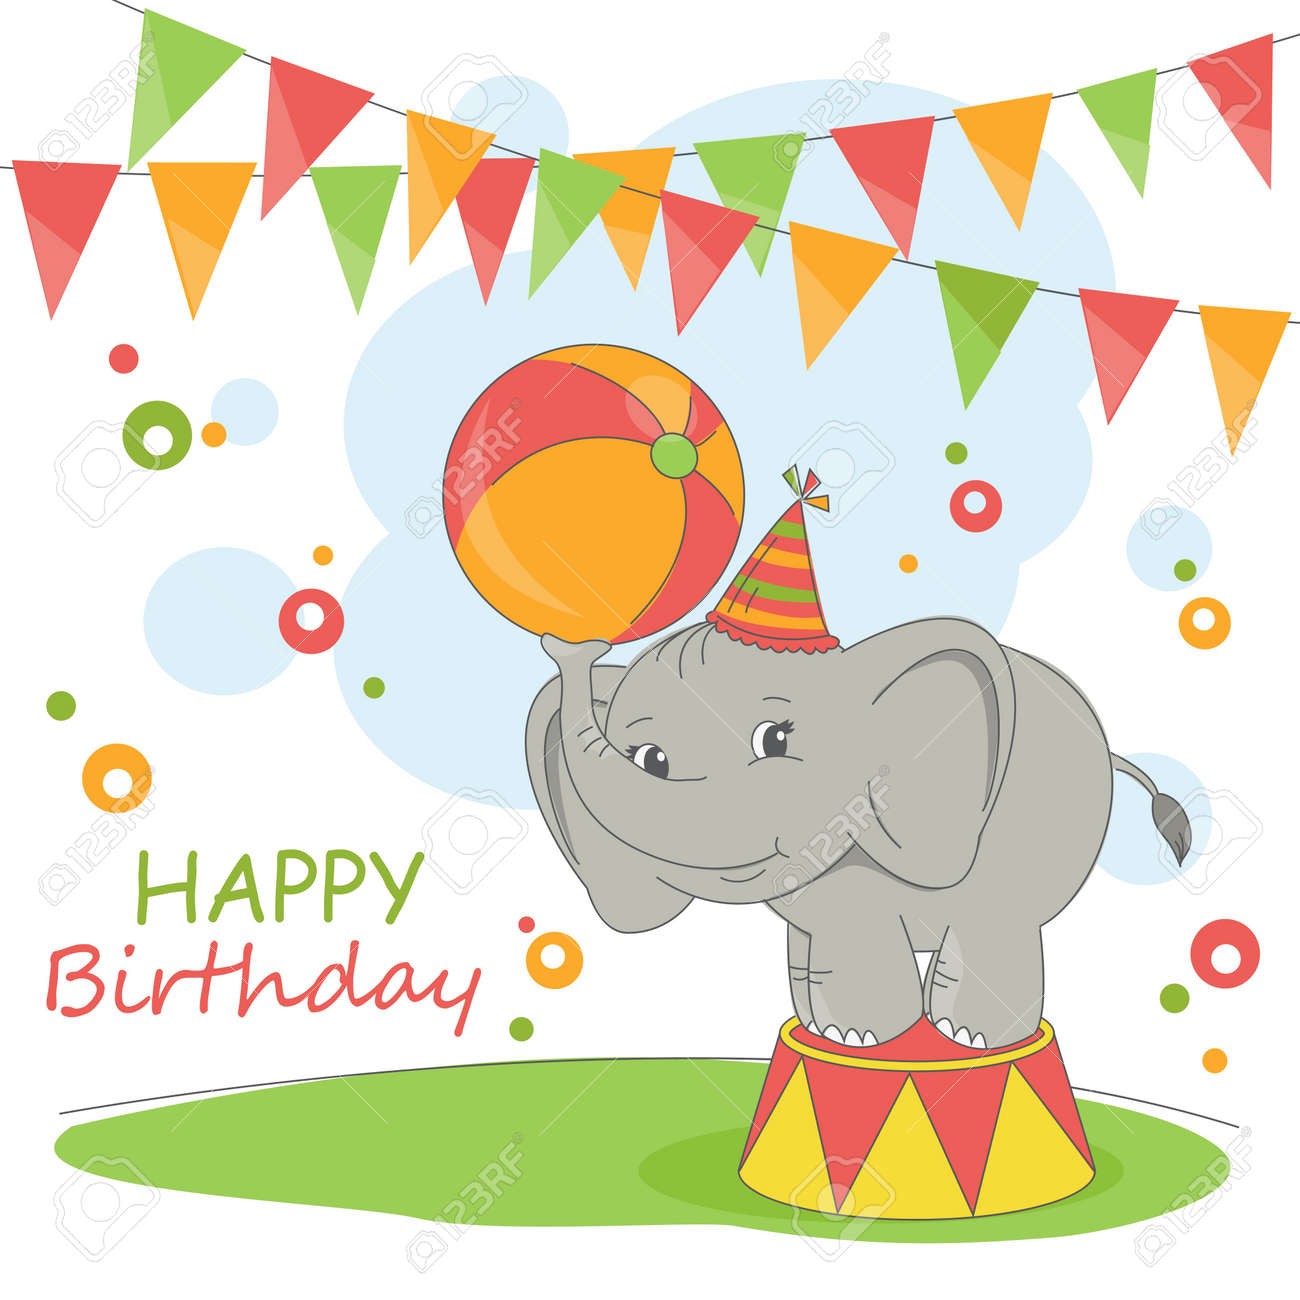 Happy Birthday Card Colorful Illustration With Cute Elephant And Garland Stock Vector